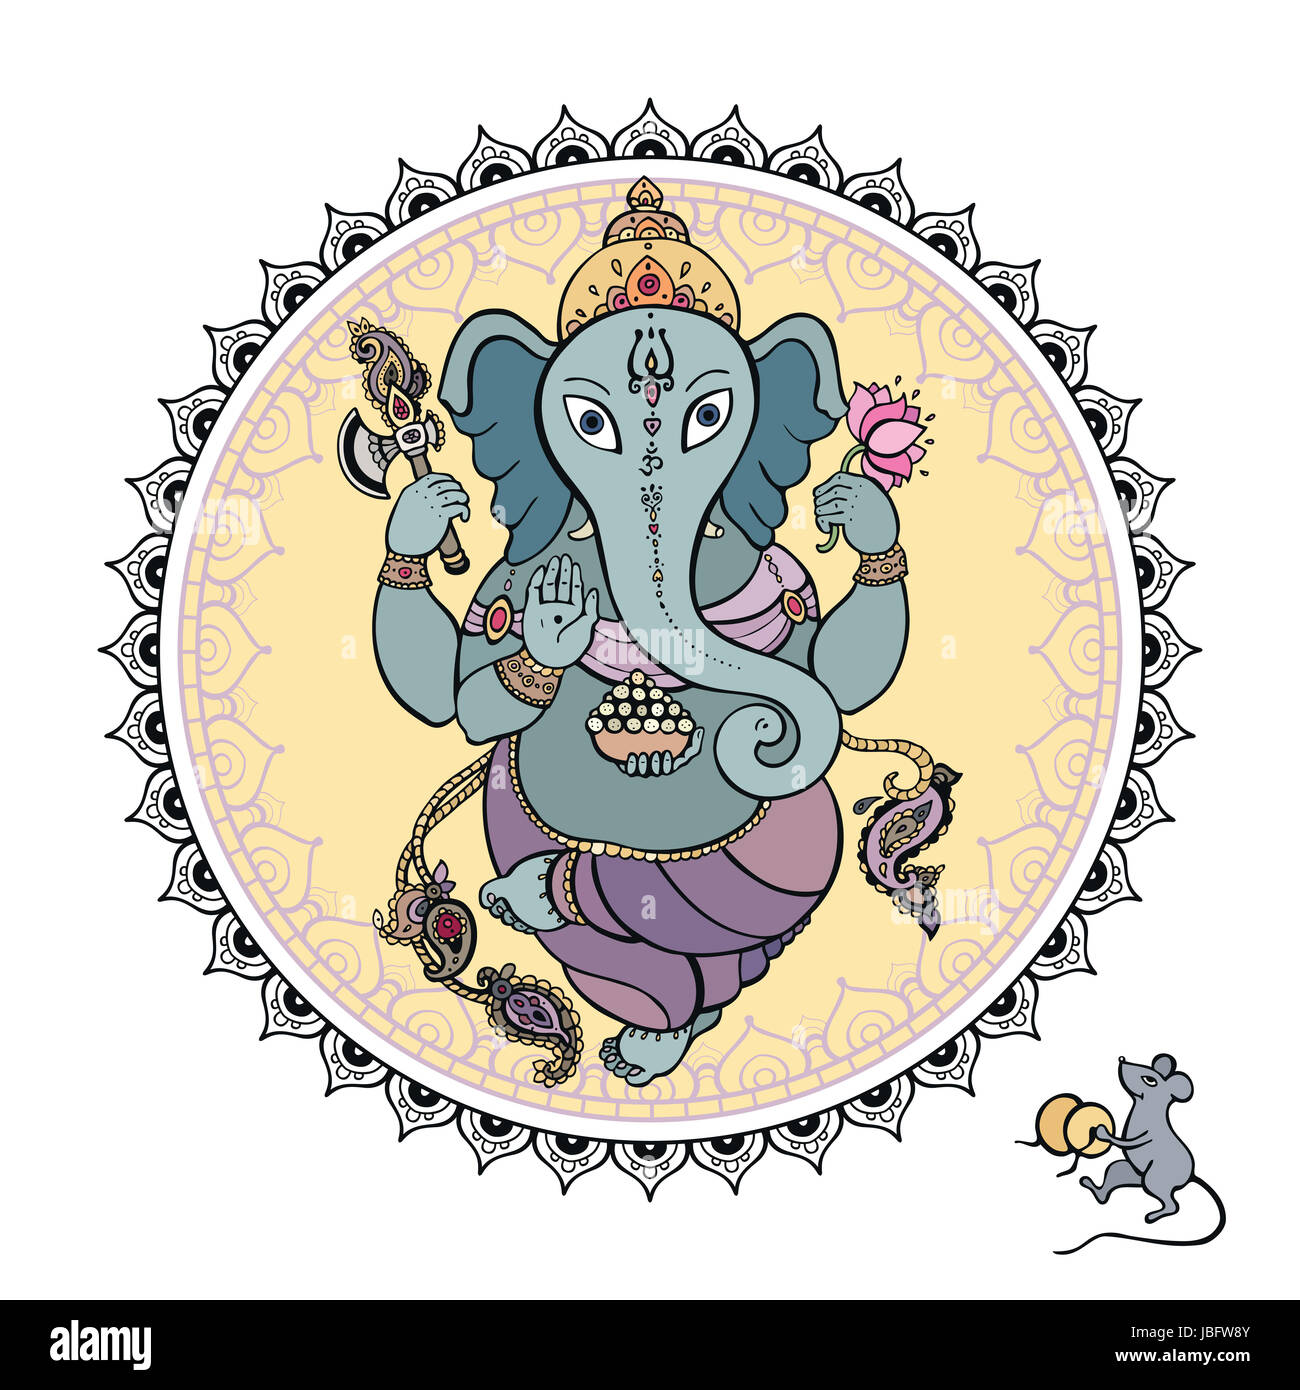 Ganesh Graphic Stock Photos & Ganesh Graphic Stock Images - Alamy